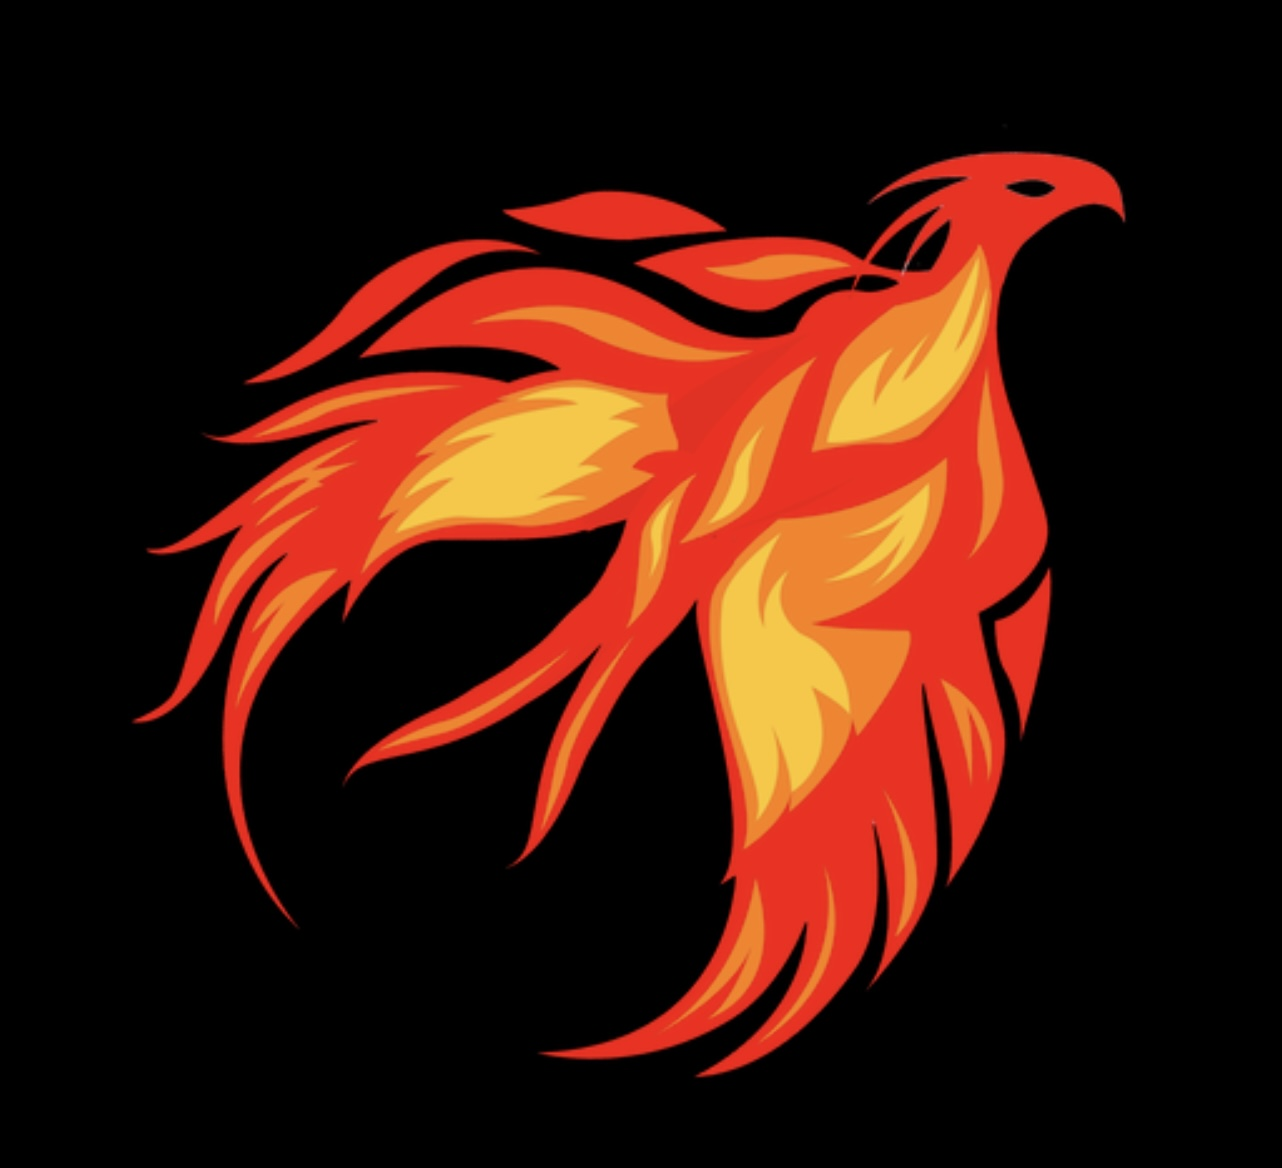 Phoenix jailbreak for 32-bit iOS 9.3.5-9.3.6 updated to V6 with improvements